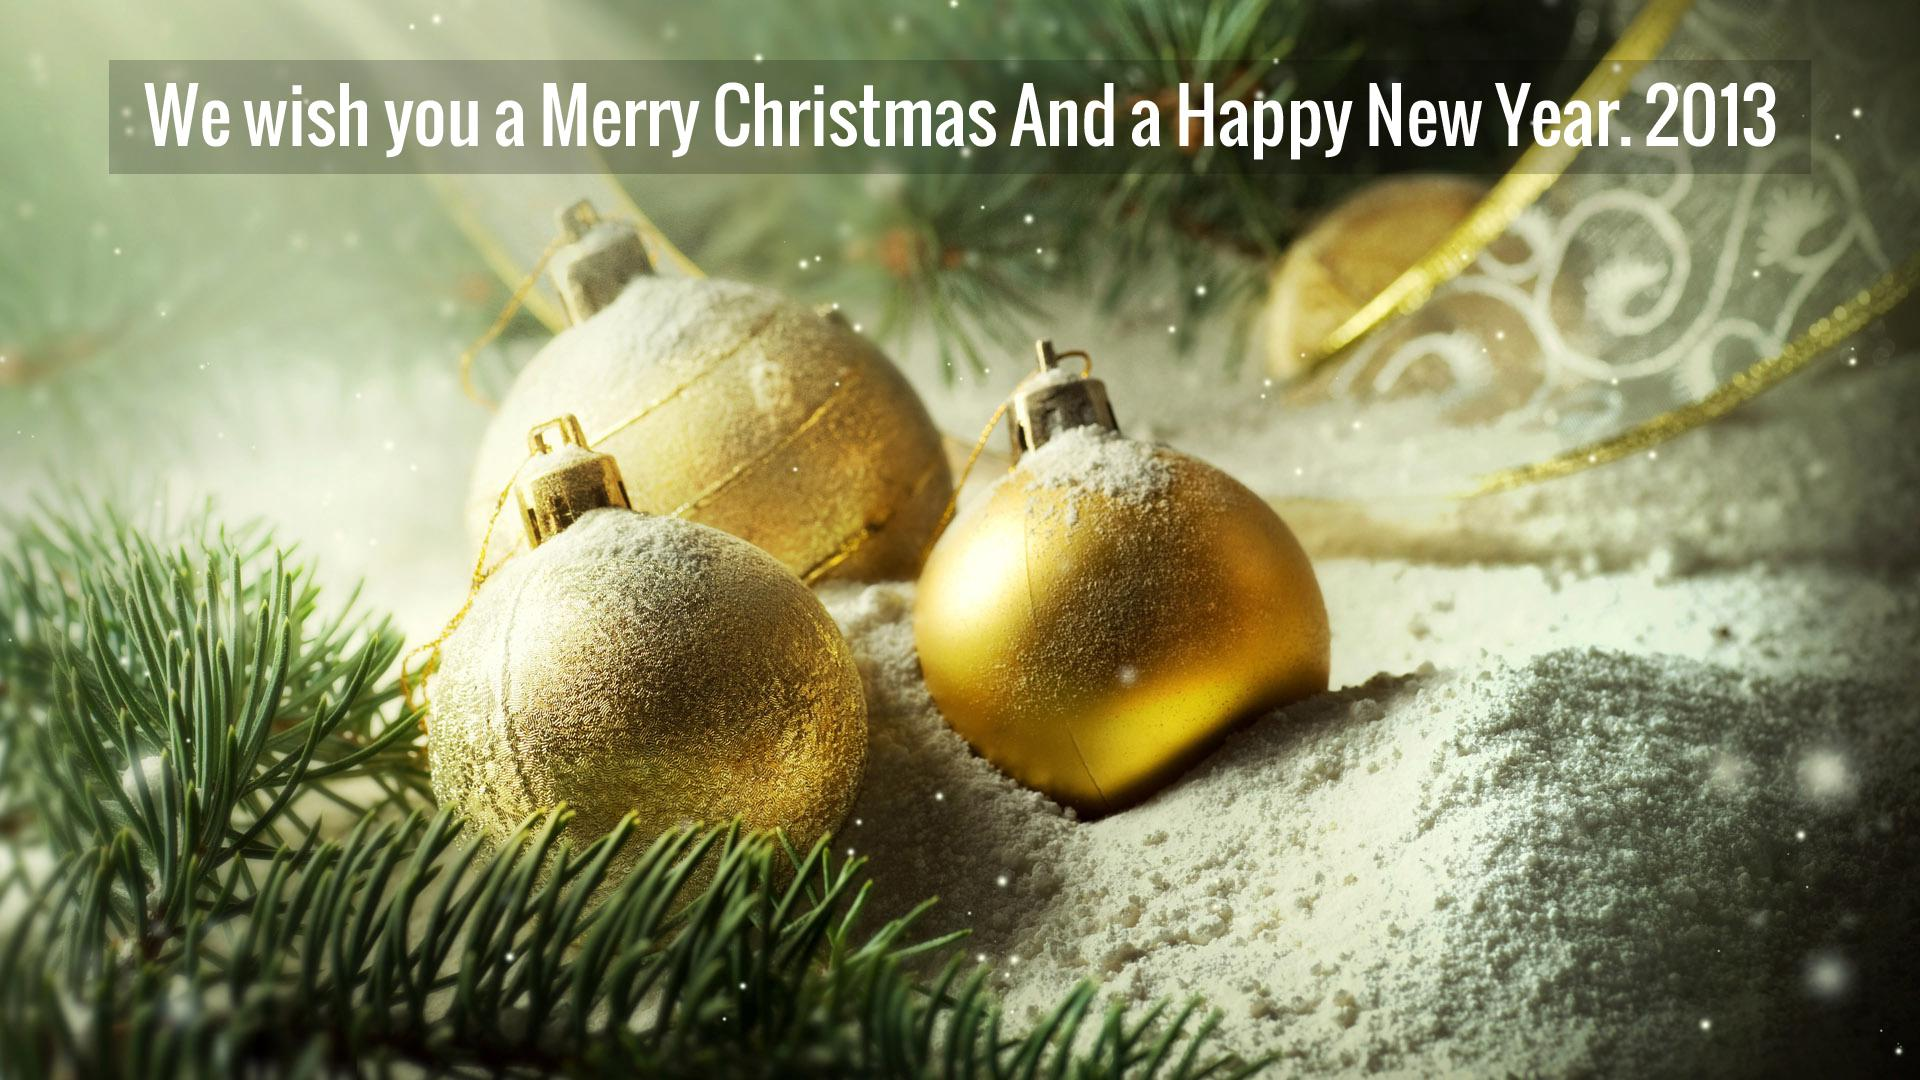 We-wish-you-a-merry-Christmas-And-a-happy-New-Year-Full-HD-Wallpaper-2013